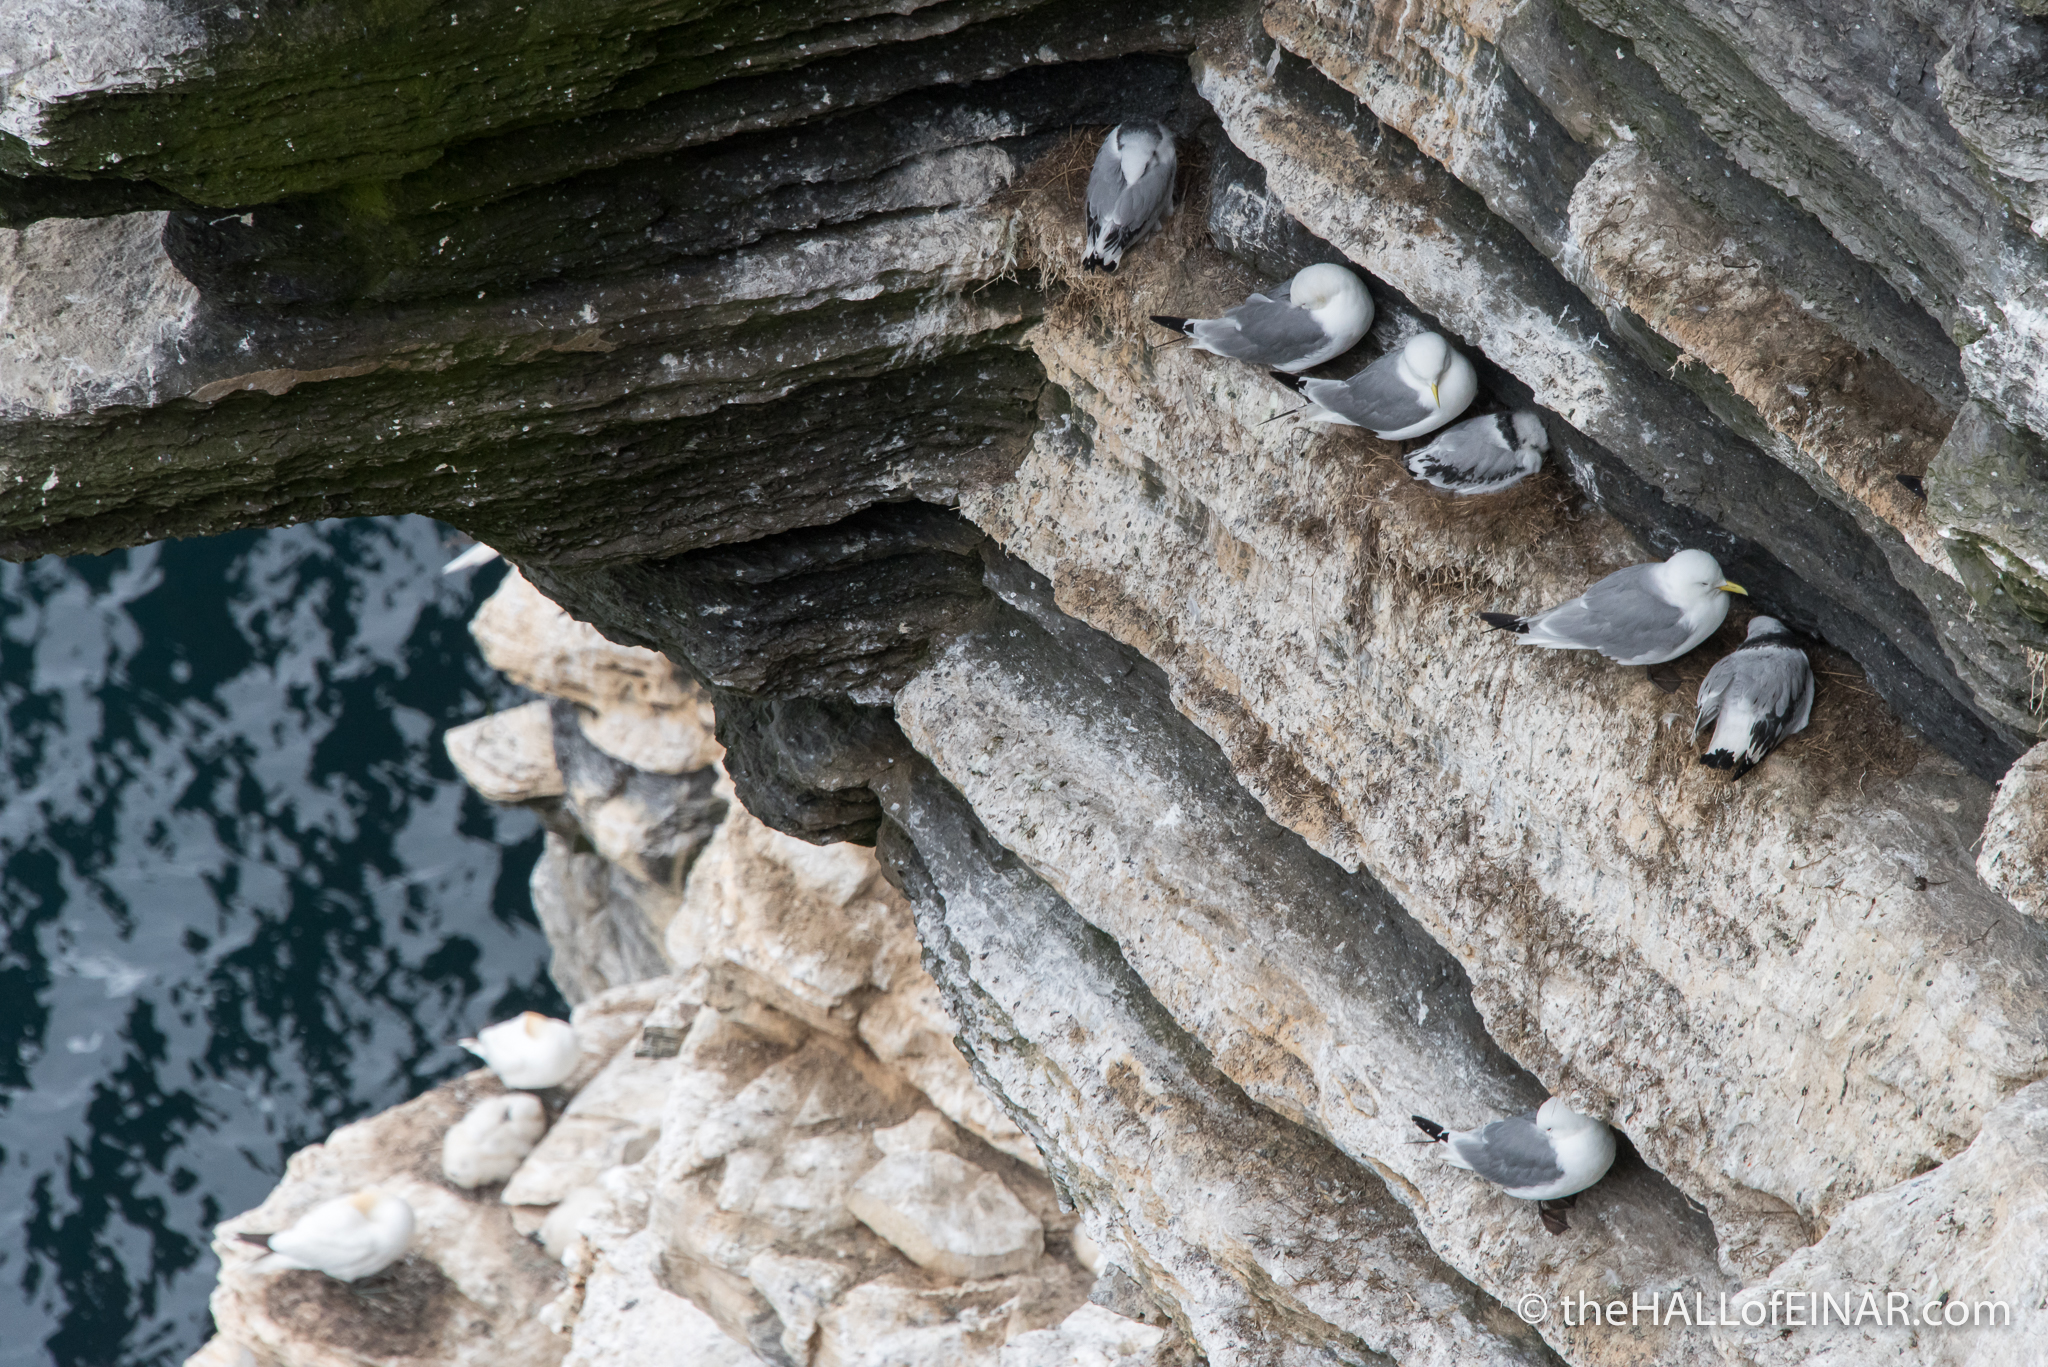 Kittiwakes - The Hall of Einar - photograph (c) David Bailey (not the)